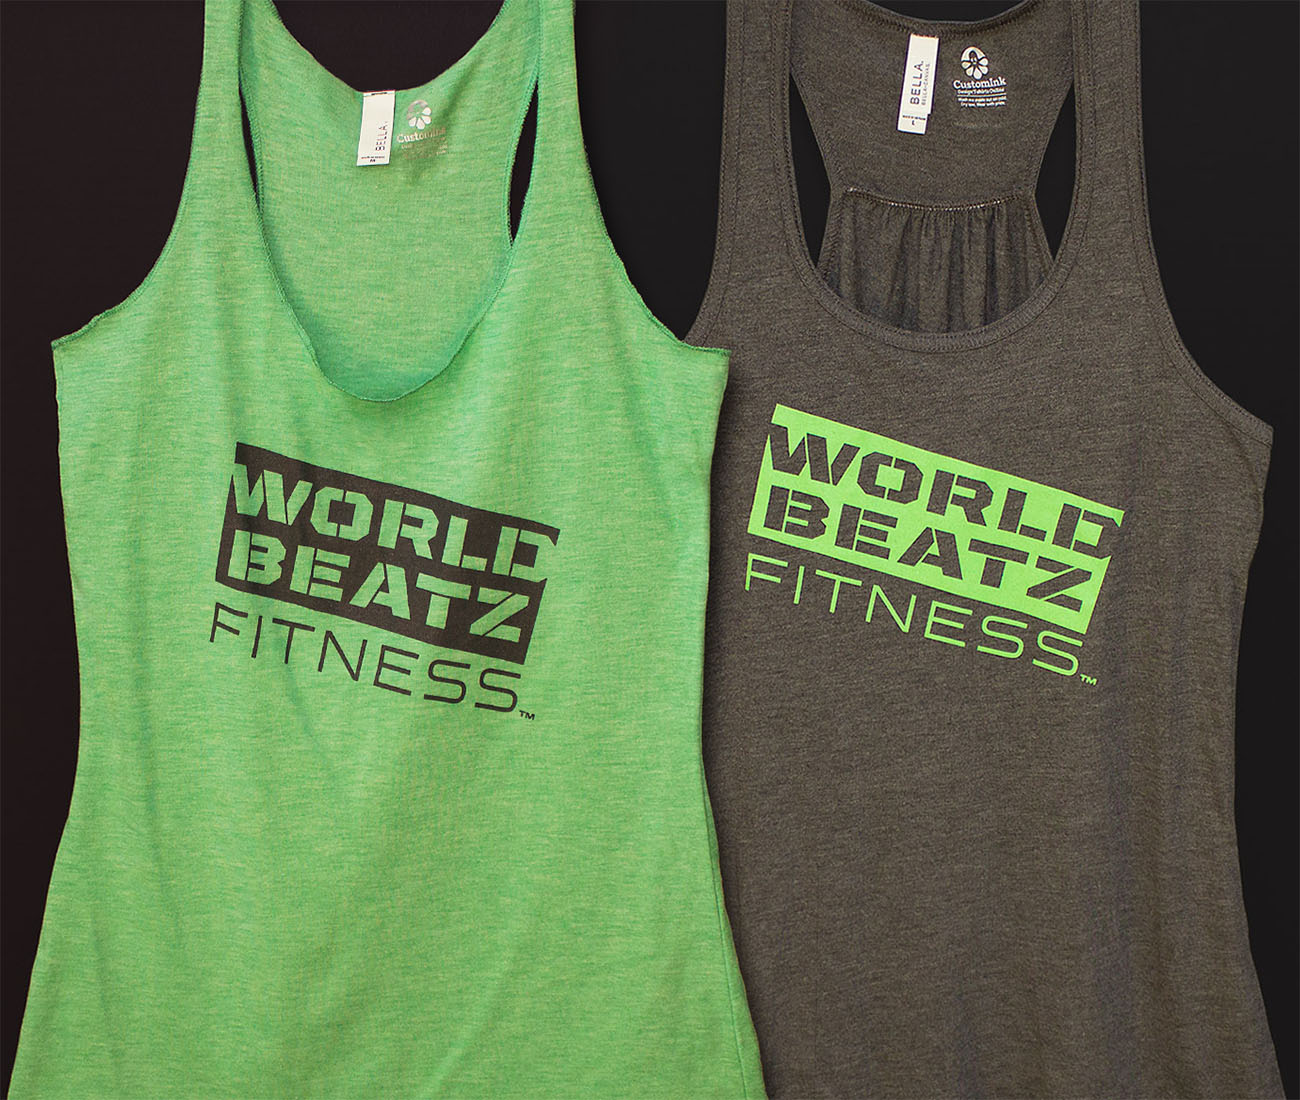 Tshirt-WorldBeatzFitness